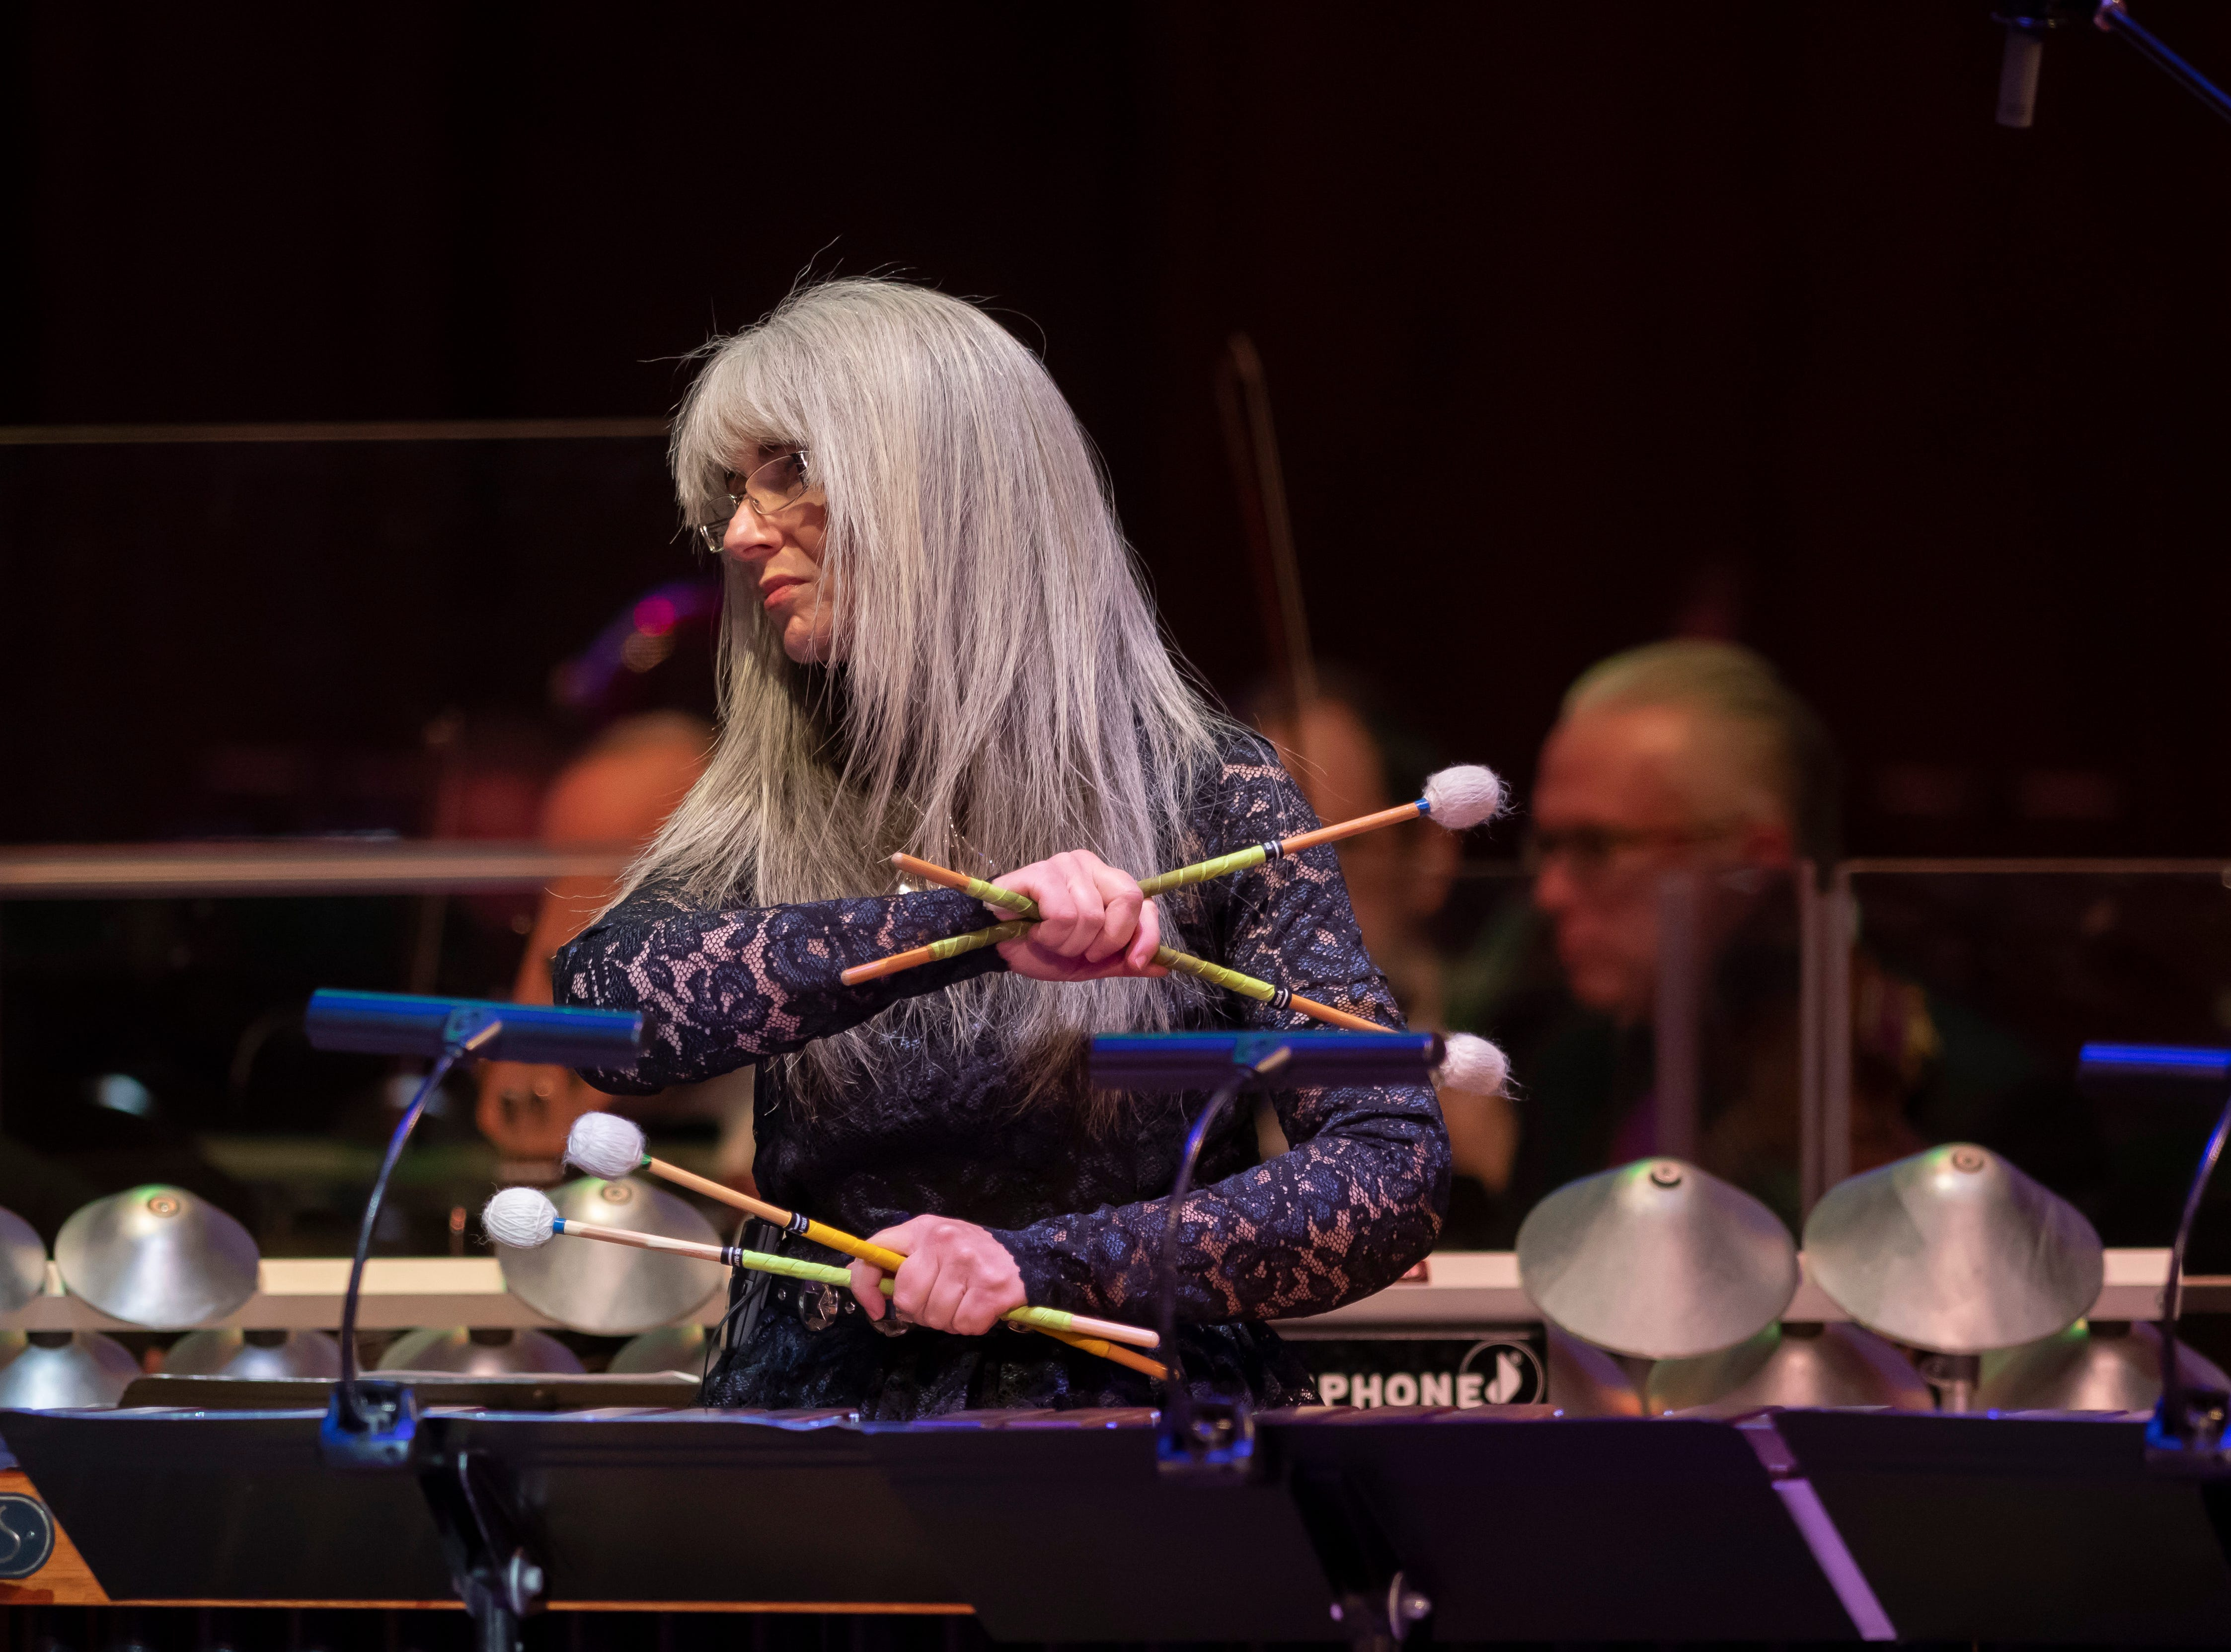 Percussionist Dame Evelyn Glennie performs during the Deaf and Loud Symphonic Experience at the Detroit Symphony Orchestra.